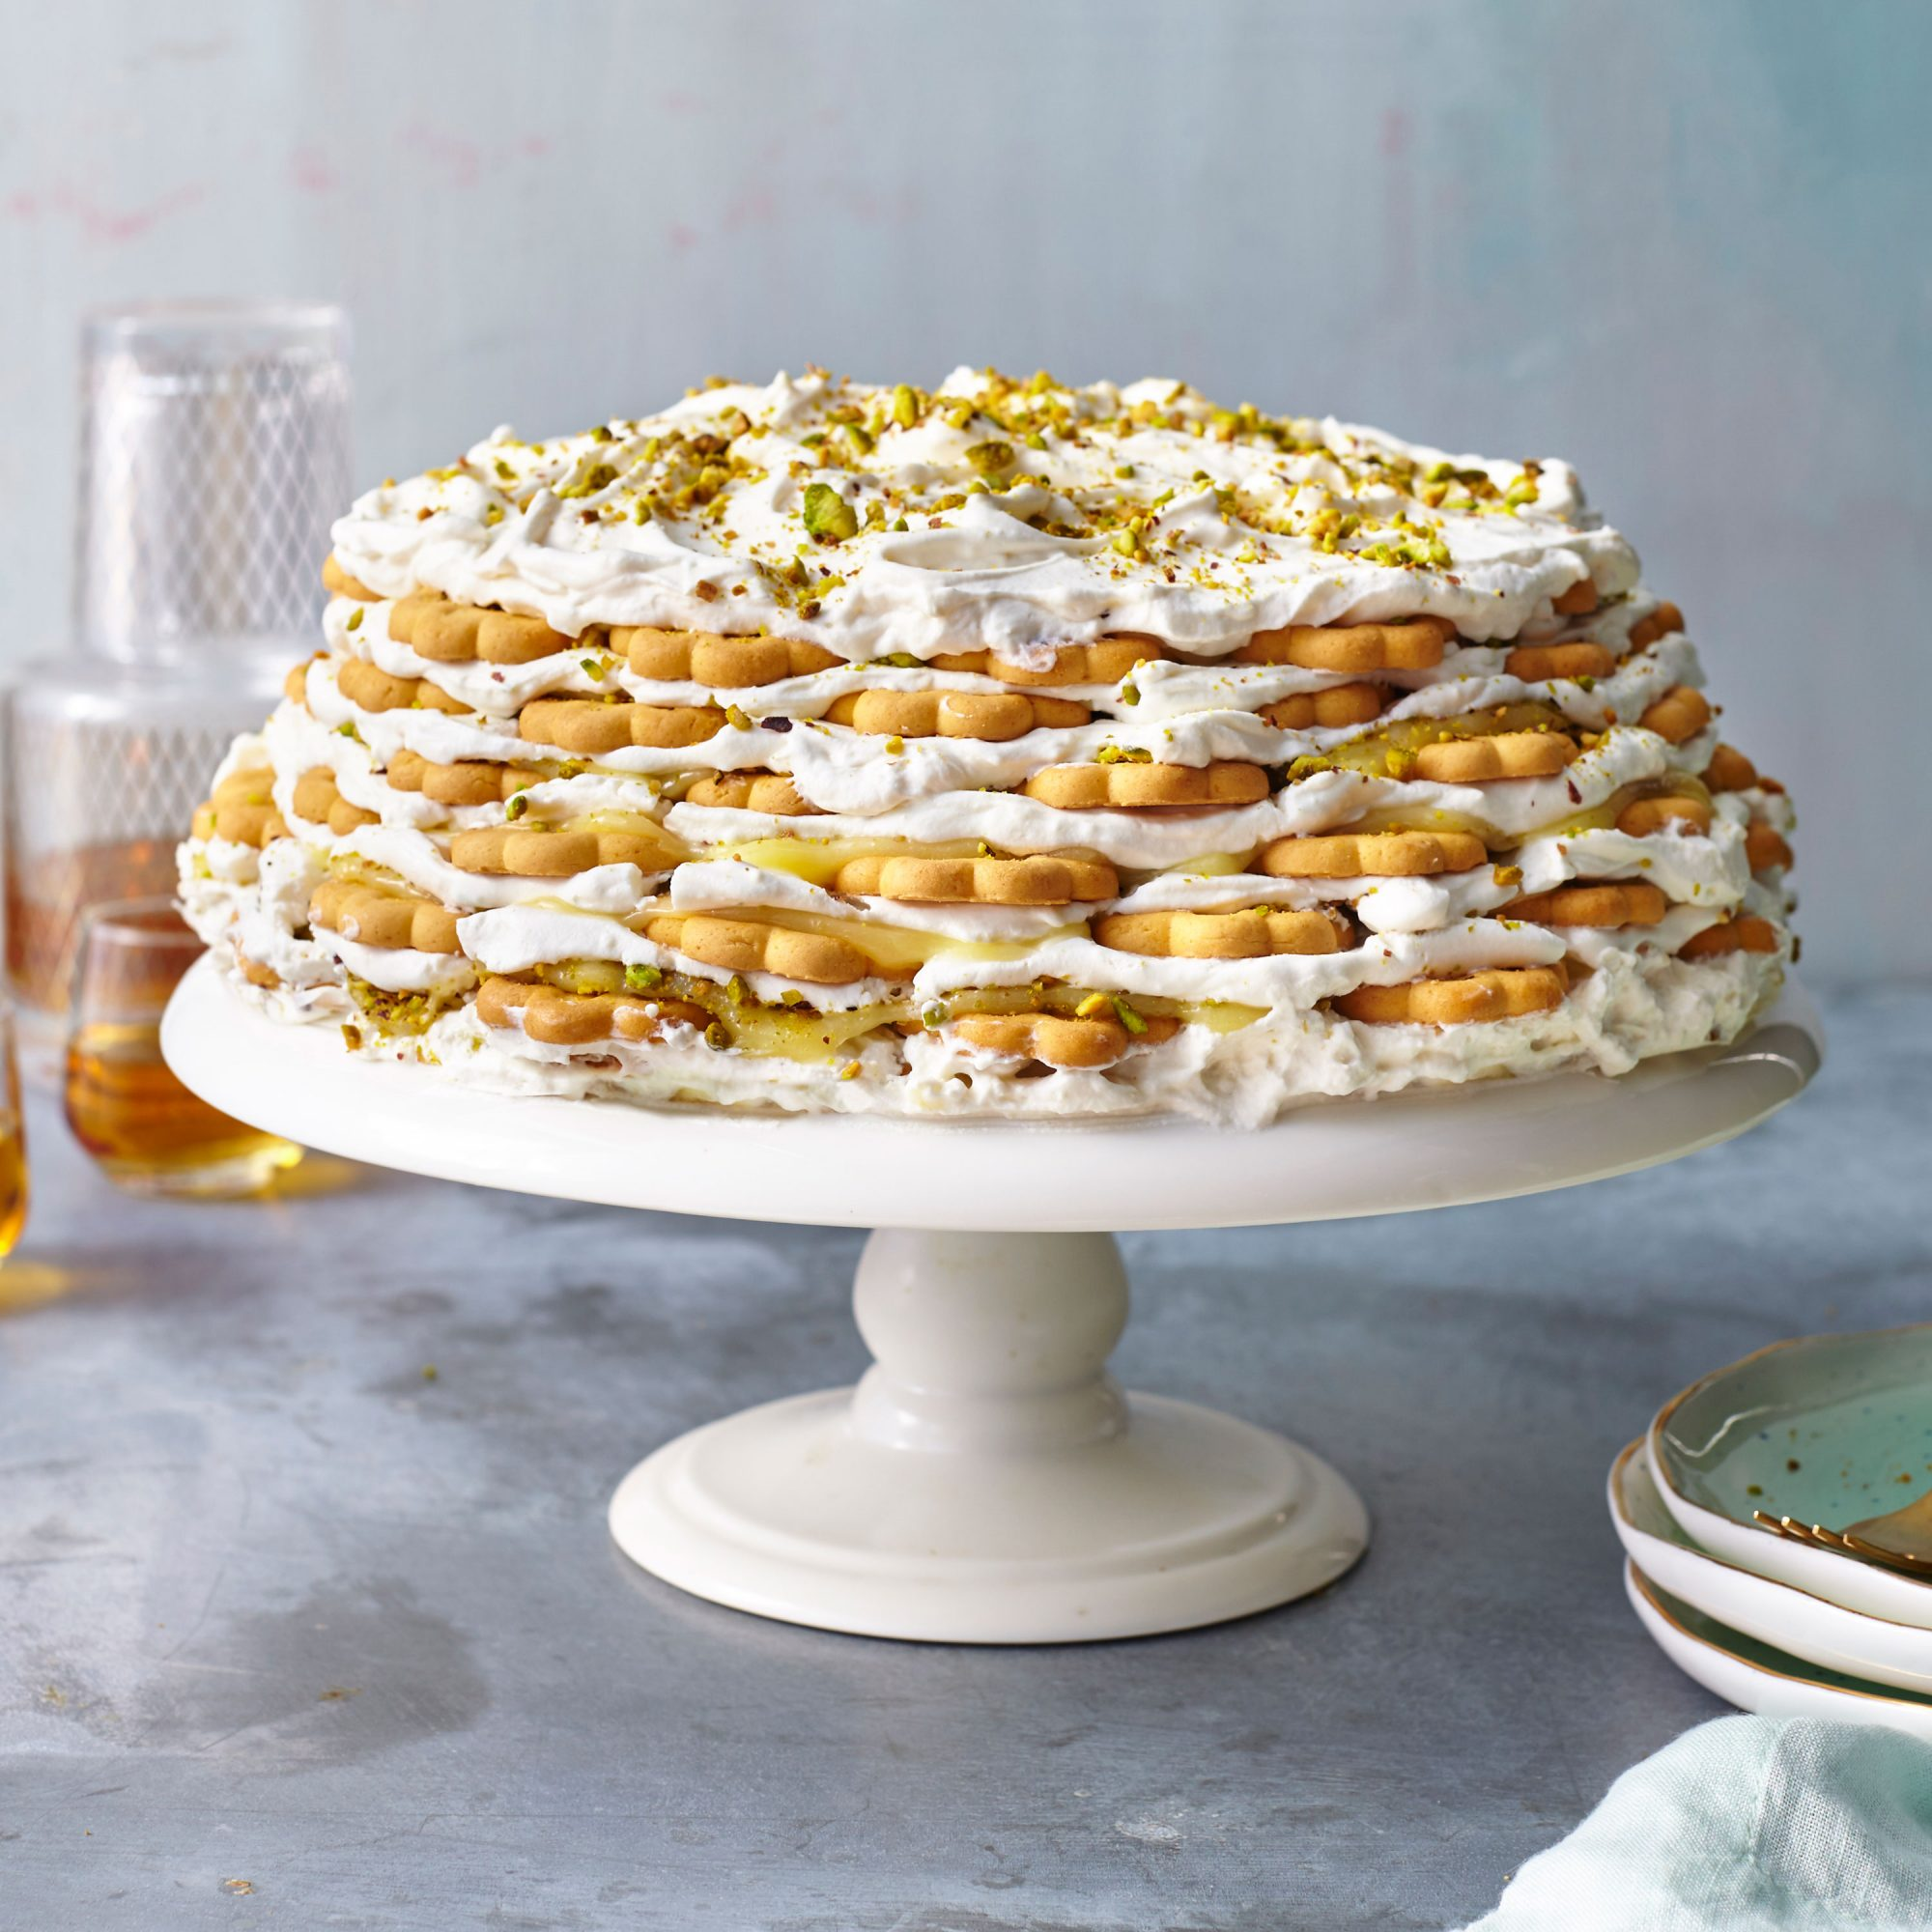 Key Lime-Shortbread Icebox Cake